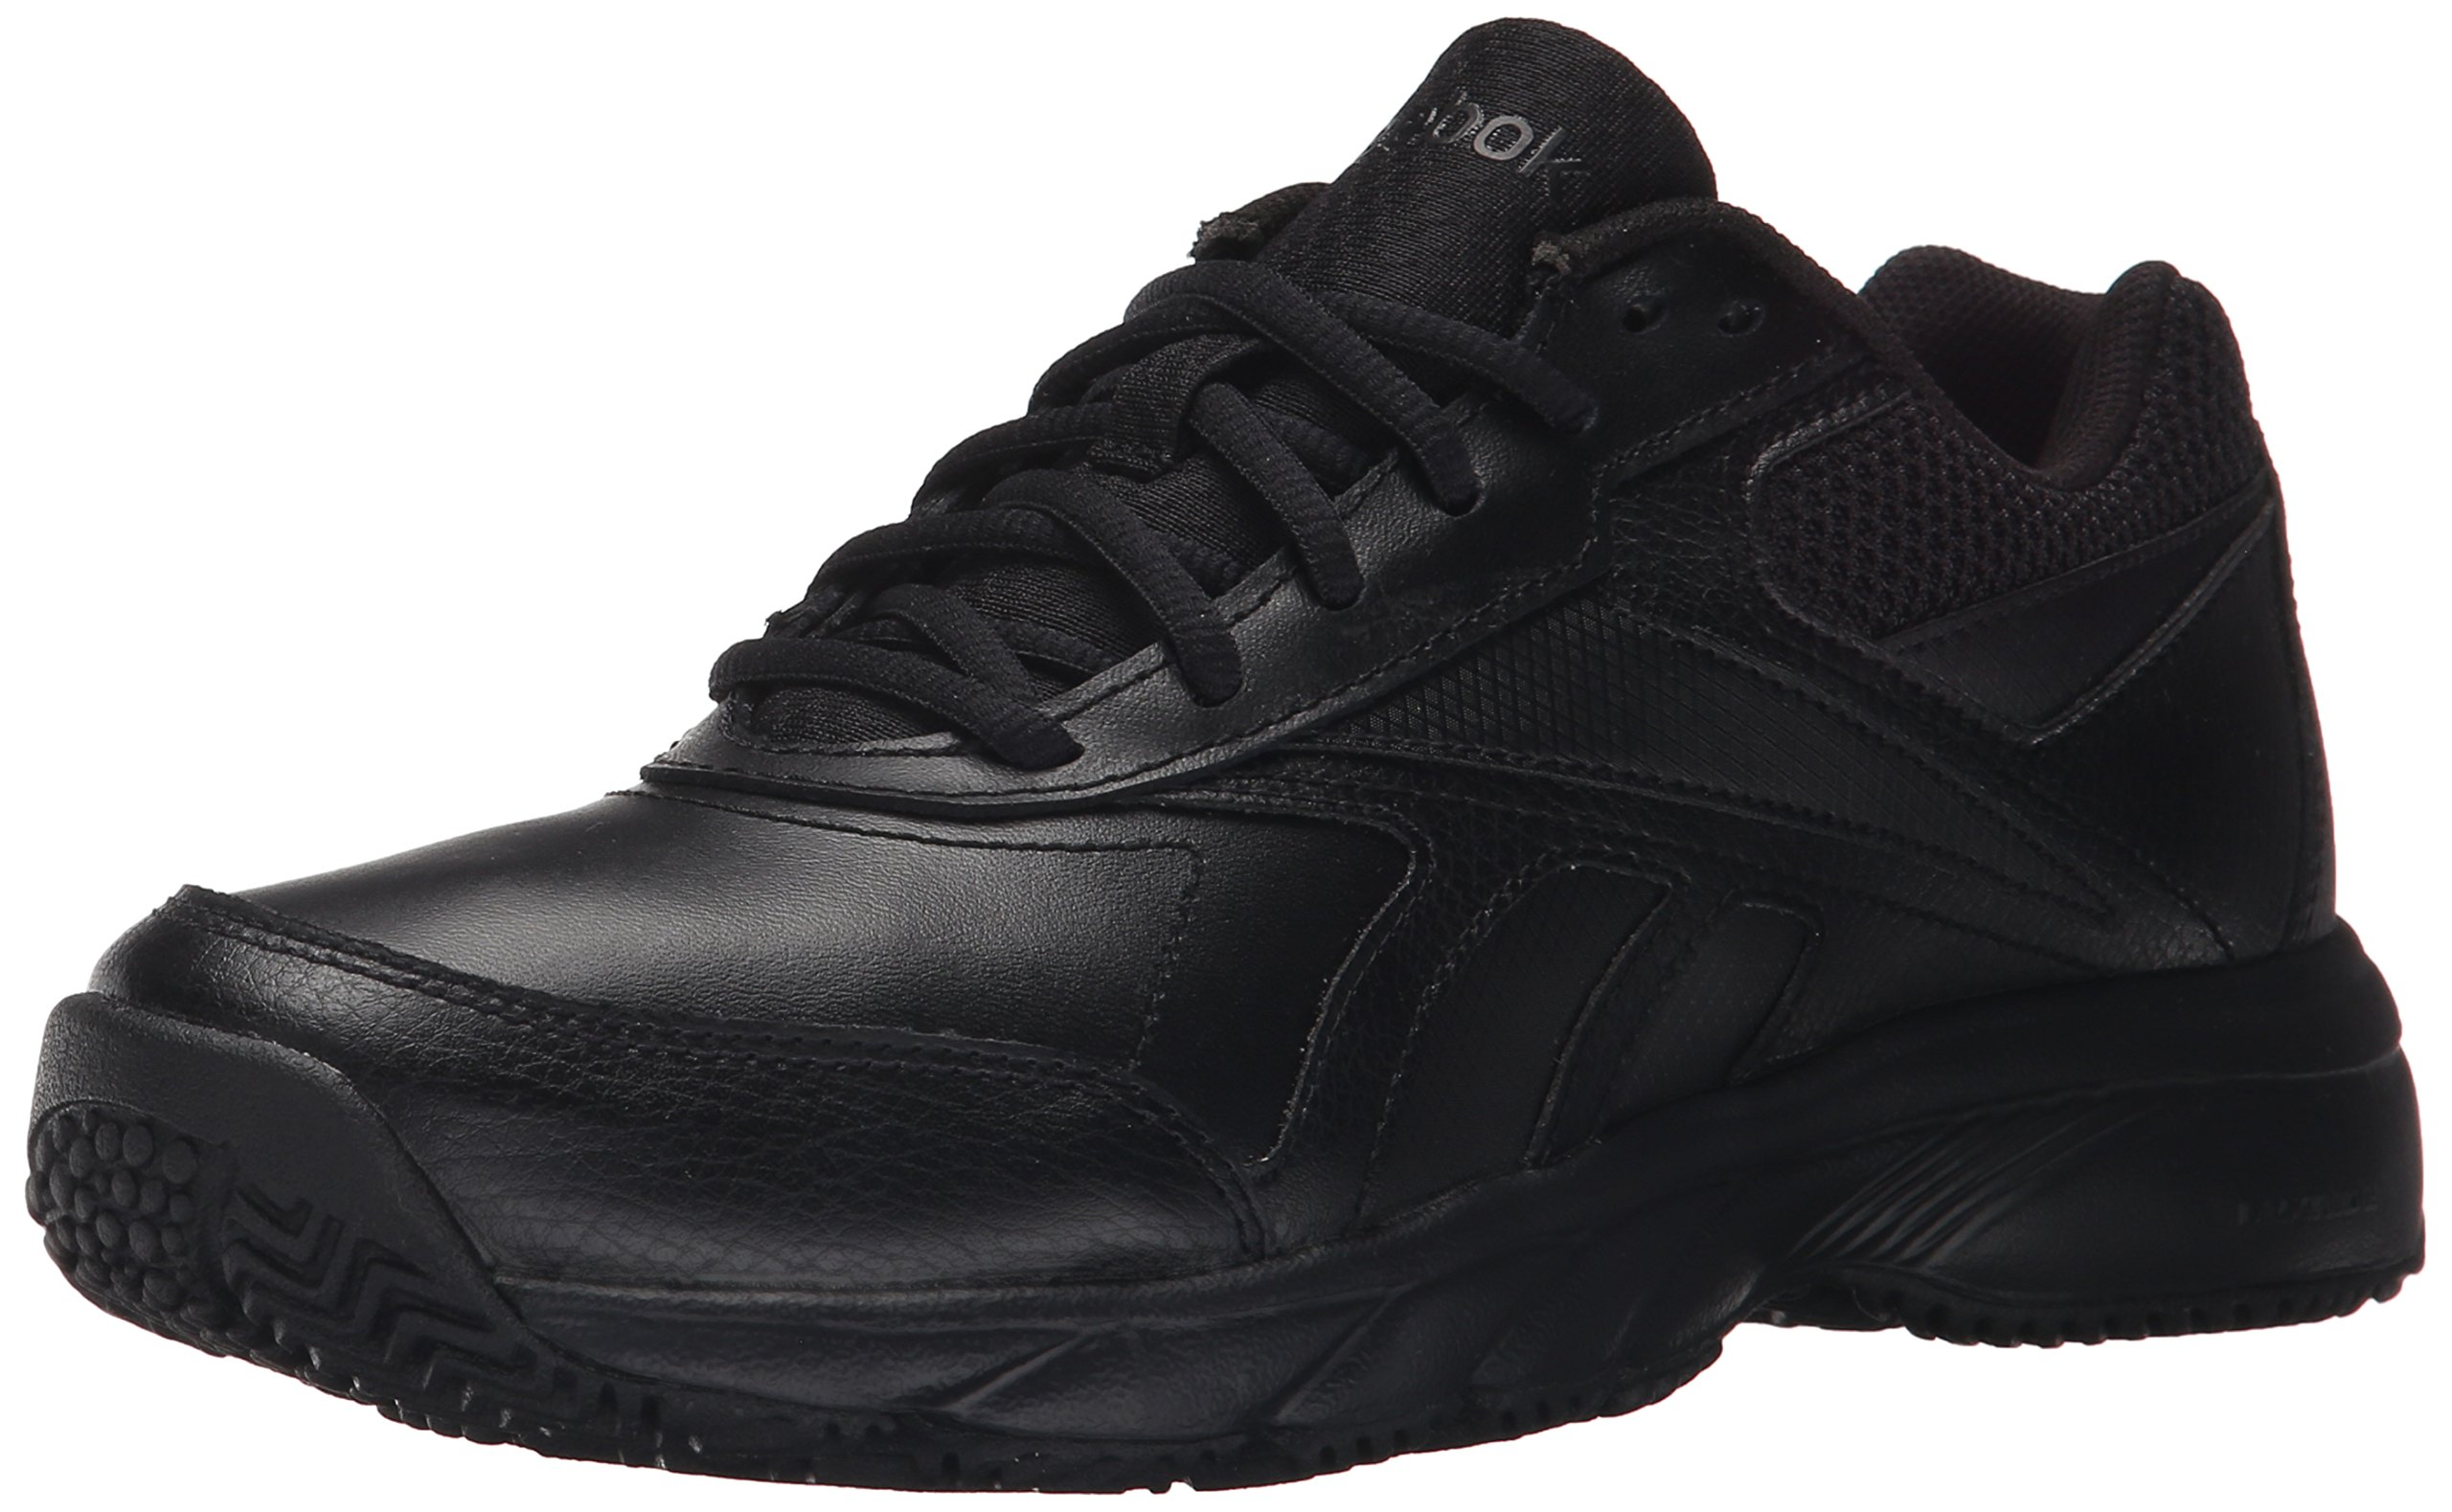 Reebok Women's Work N Cushion 2.0 Walking Shoe, Black/Black, 7.5 M US